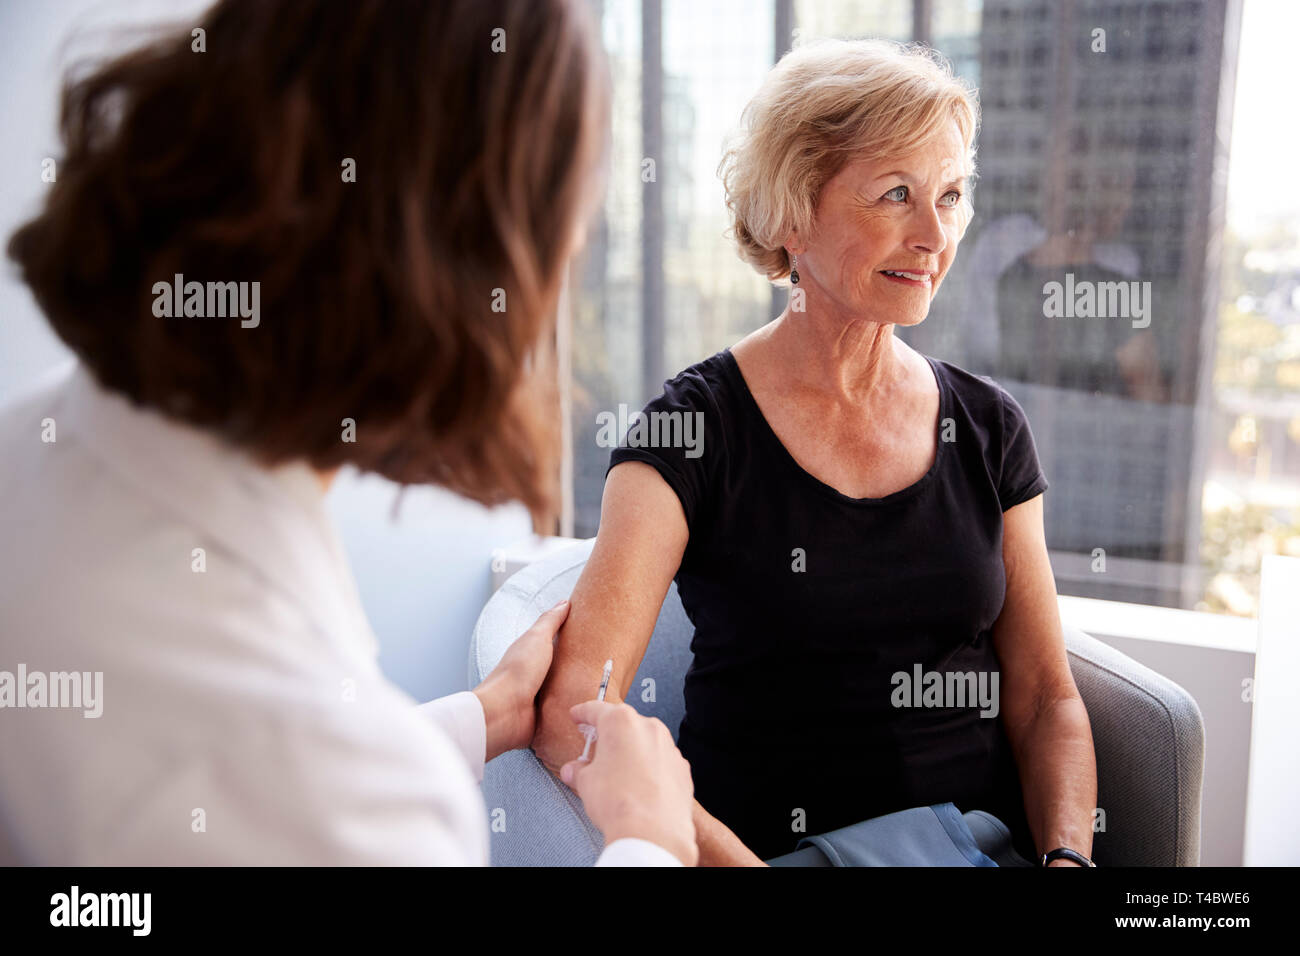 Senior Woman Being Vaccinated With Flu Jab By Female Doctor In Hospital Office - Stock Image